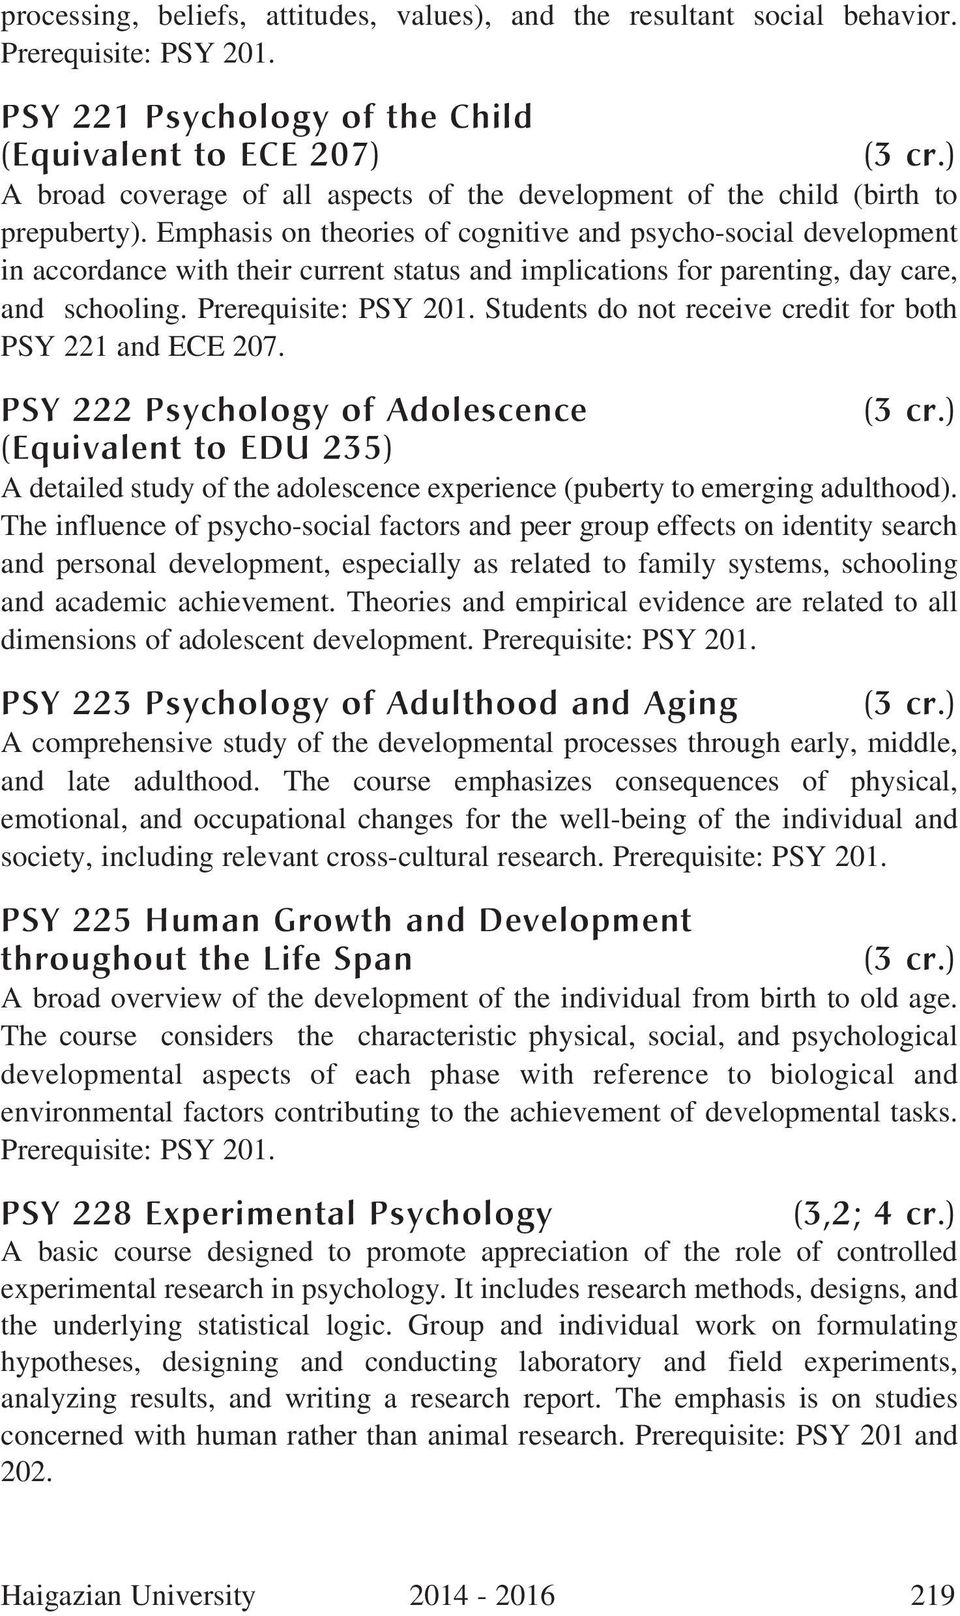 Emphasis on theories of cognitive and psycho-social development in accordance with their current status and implications for parenting, day care, and schooling. Prerequisite: PSY 201.